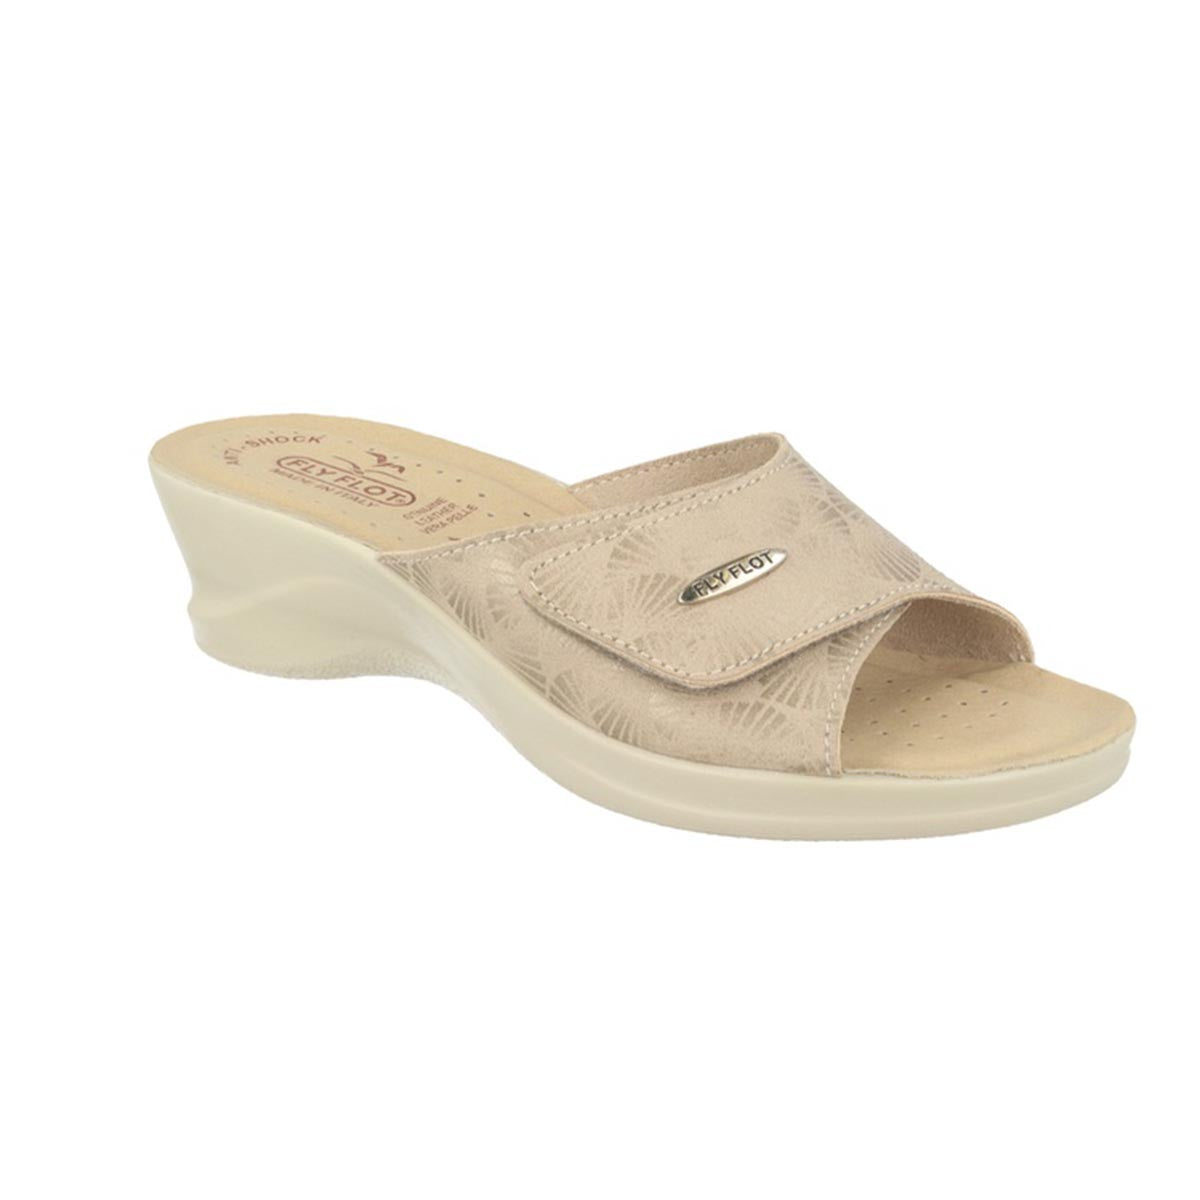 Cloth Woman Slipper Beige (96a63lb)